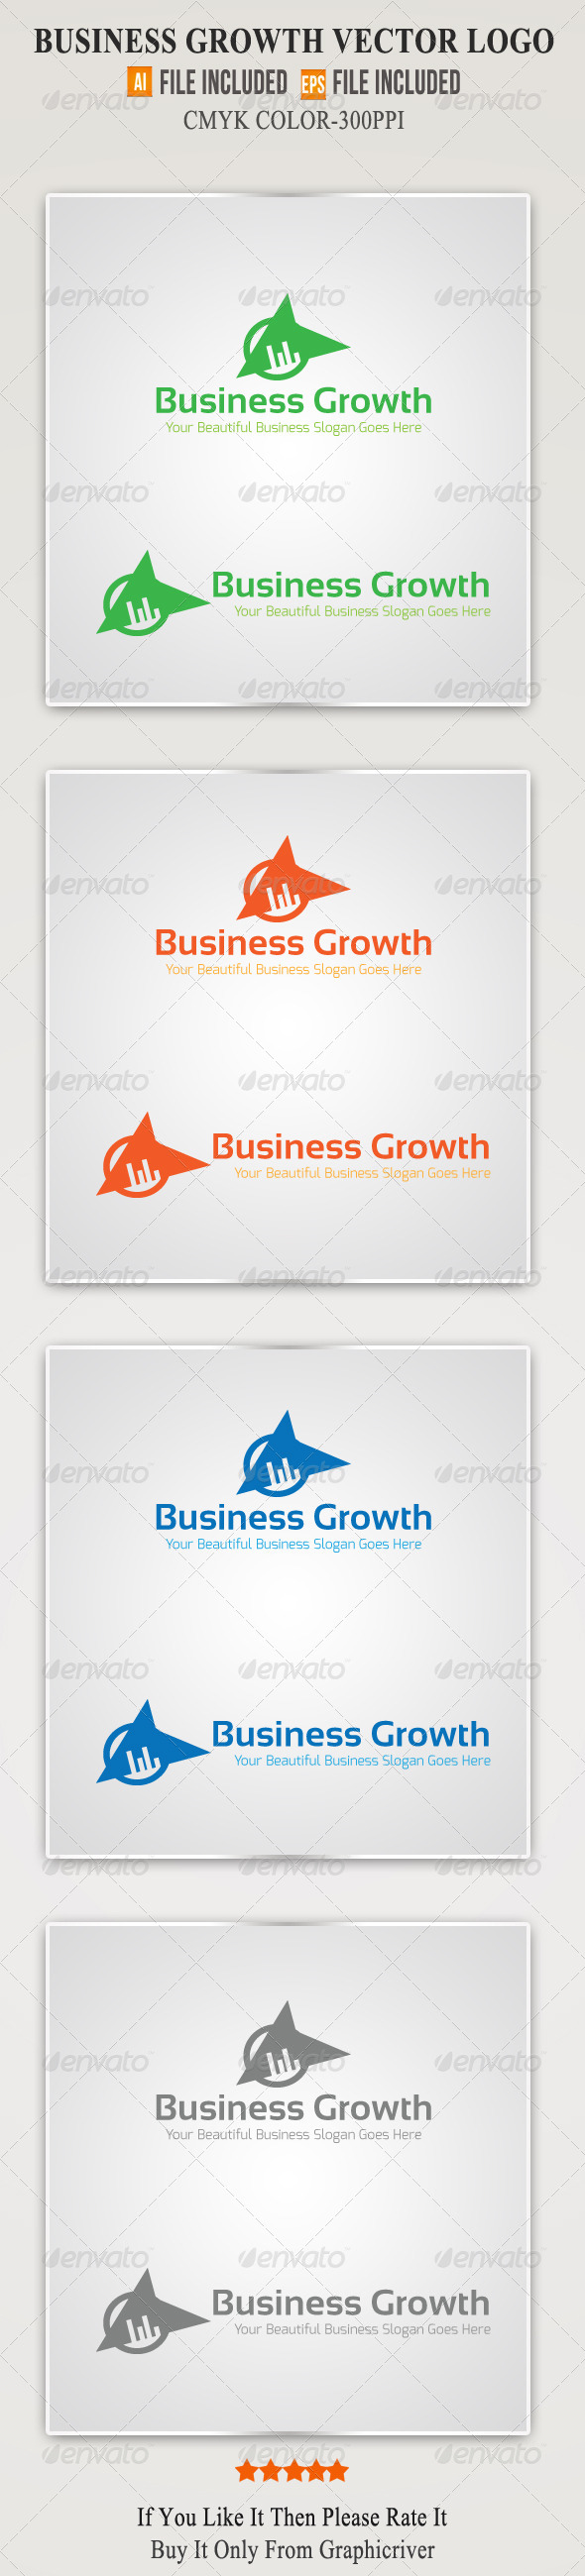 GraphicRiver Business Growth Vector Logo Template 2 4980467